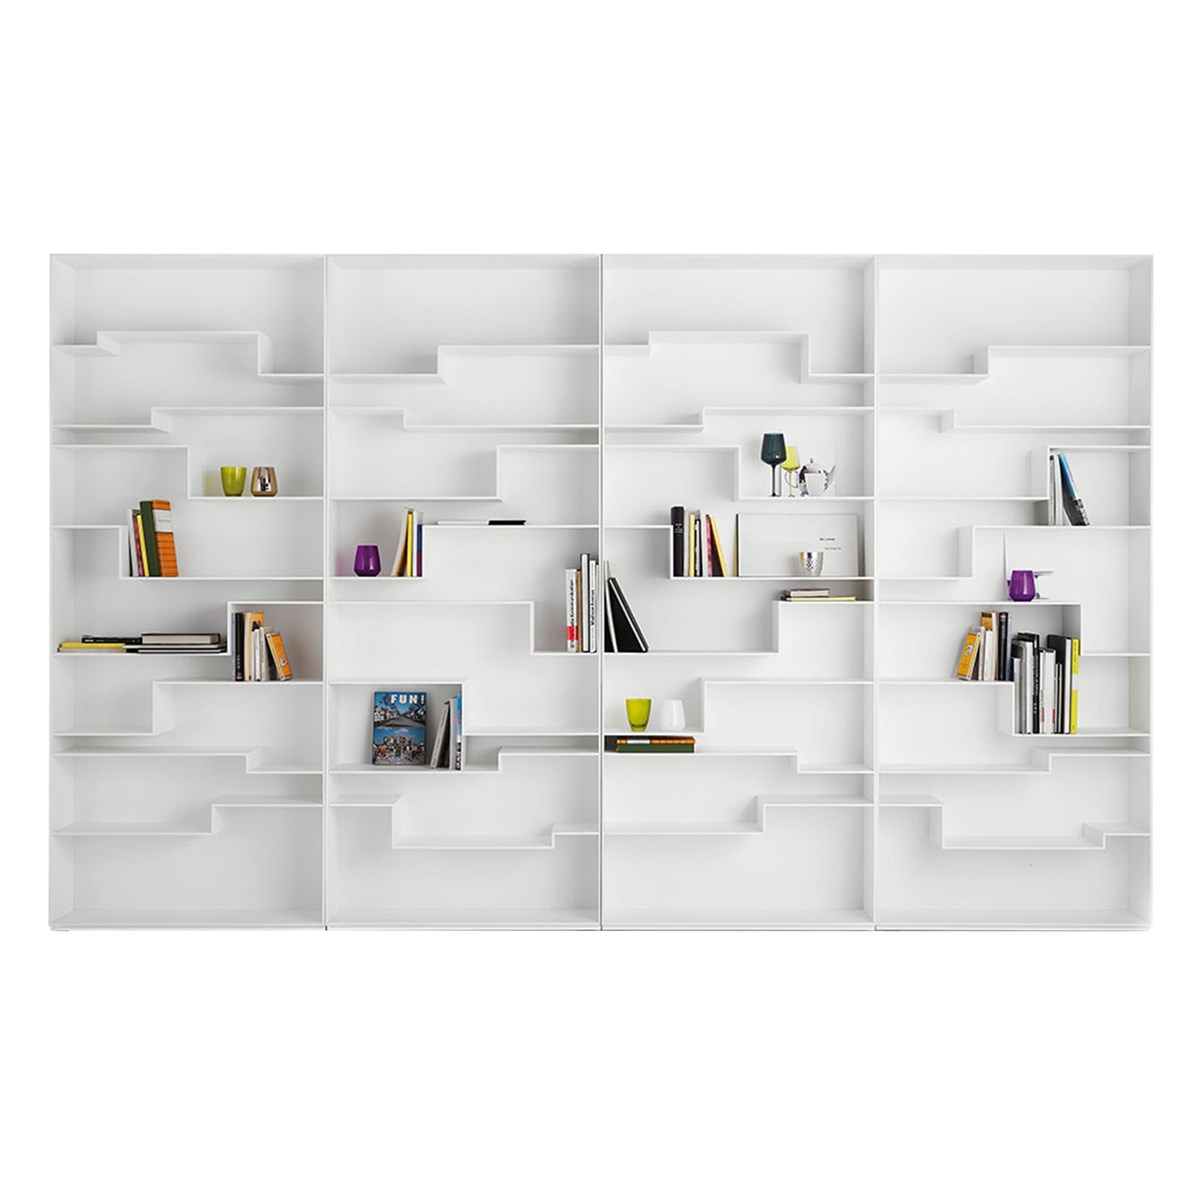 MDF-Italia-Neuland-Industriedesign-Melody-Shelving-System-Matisse-1